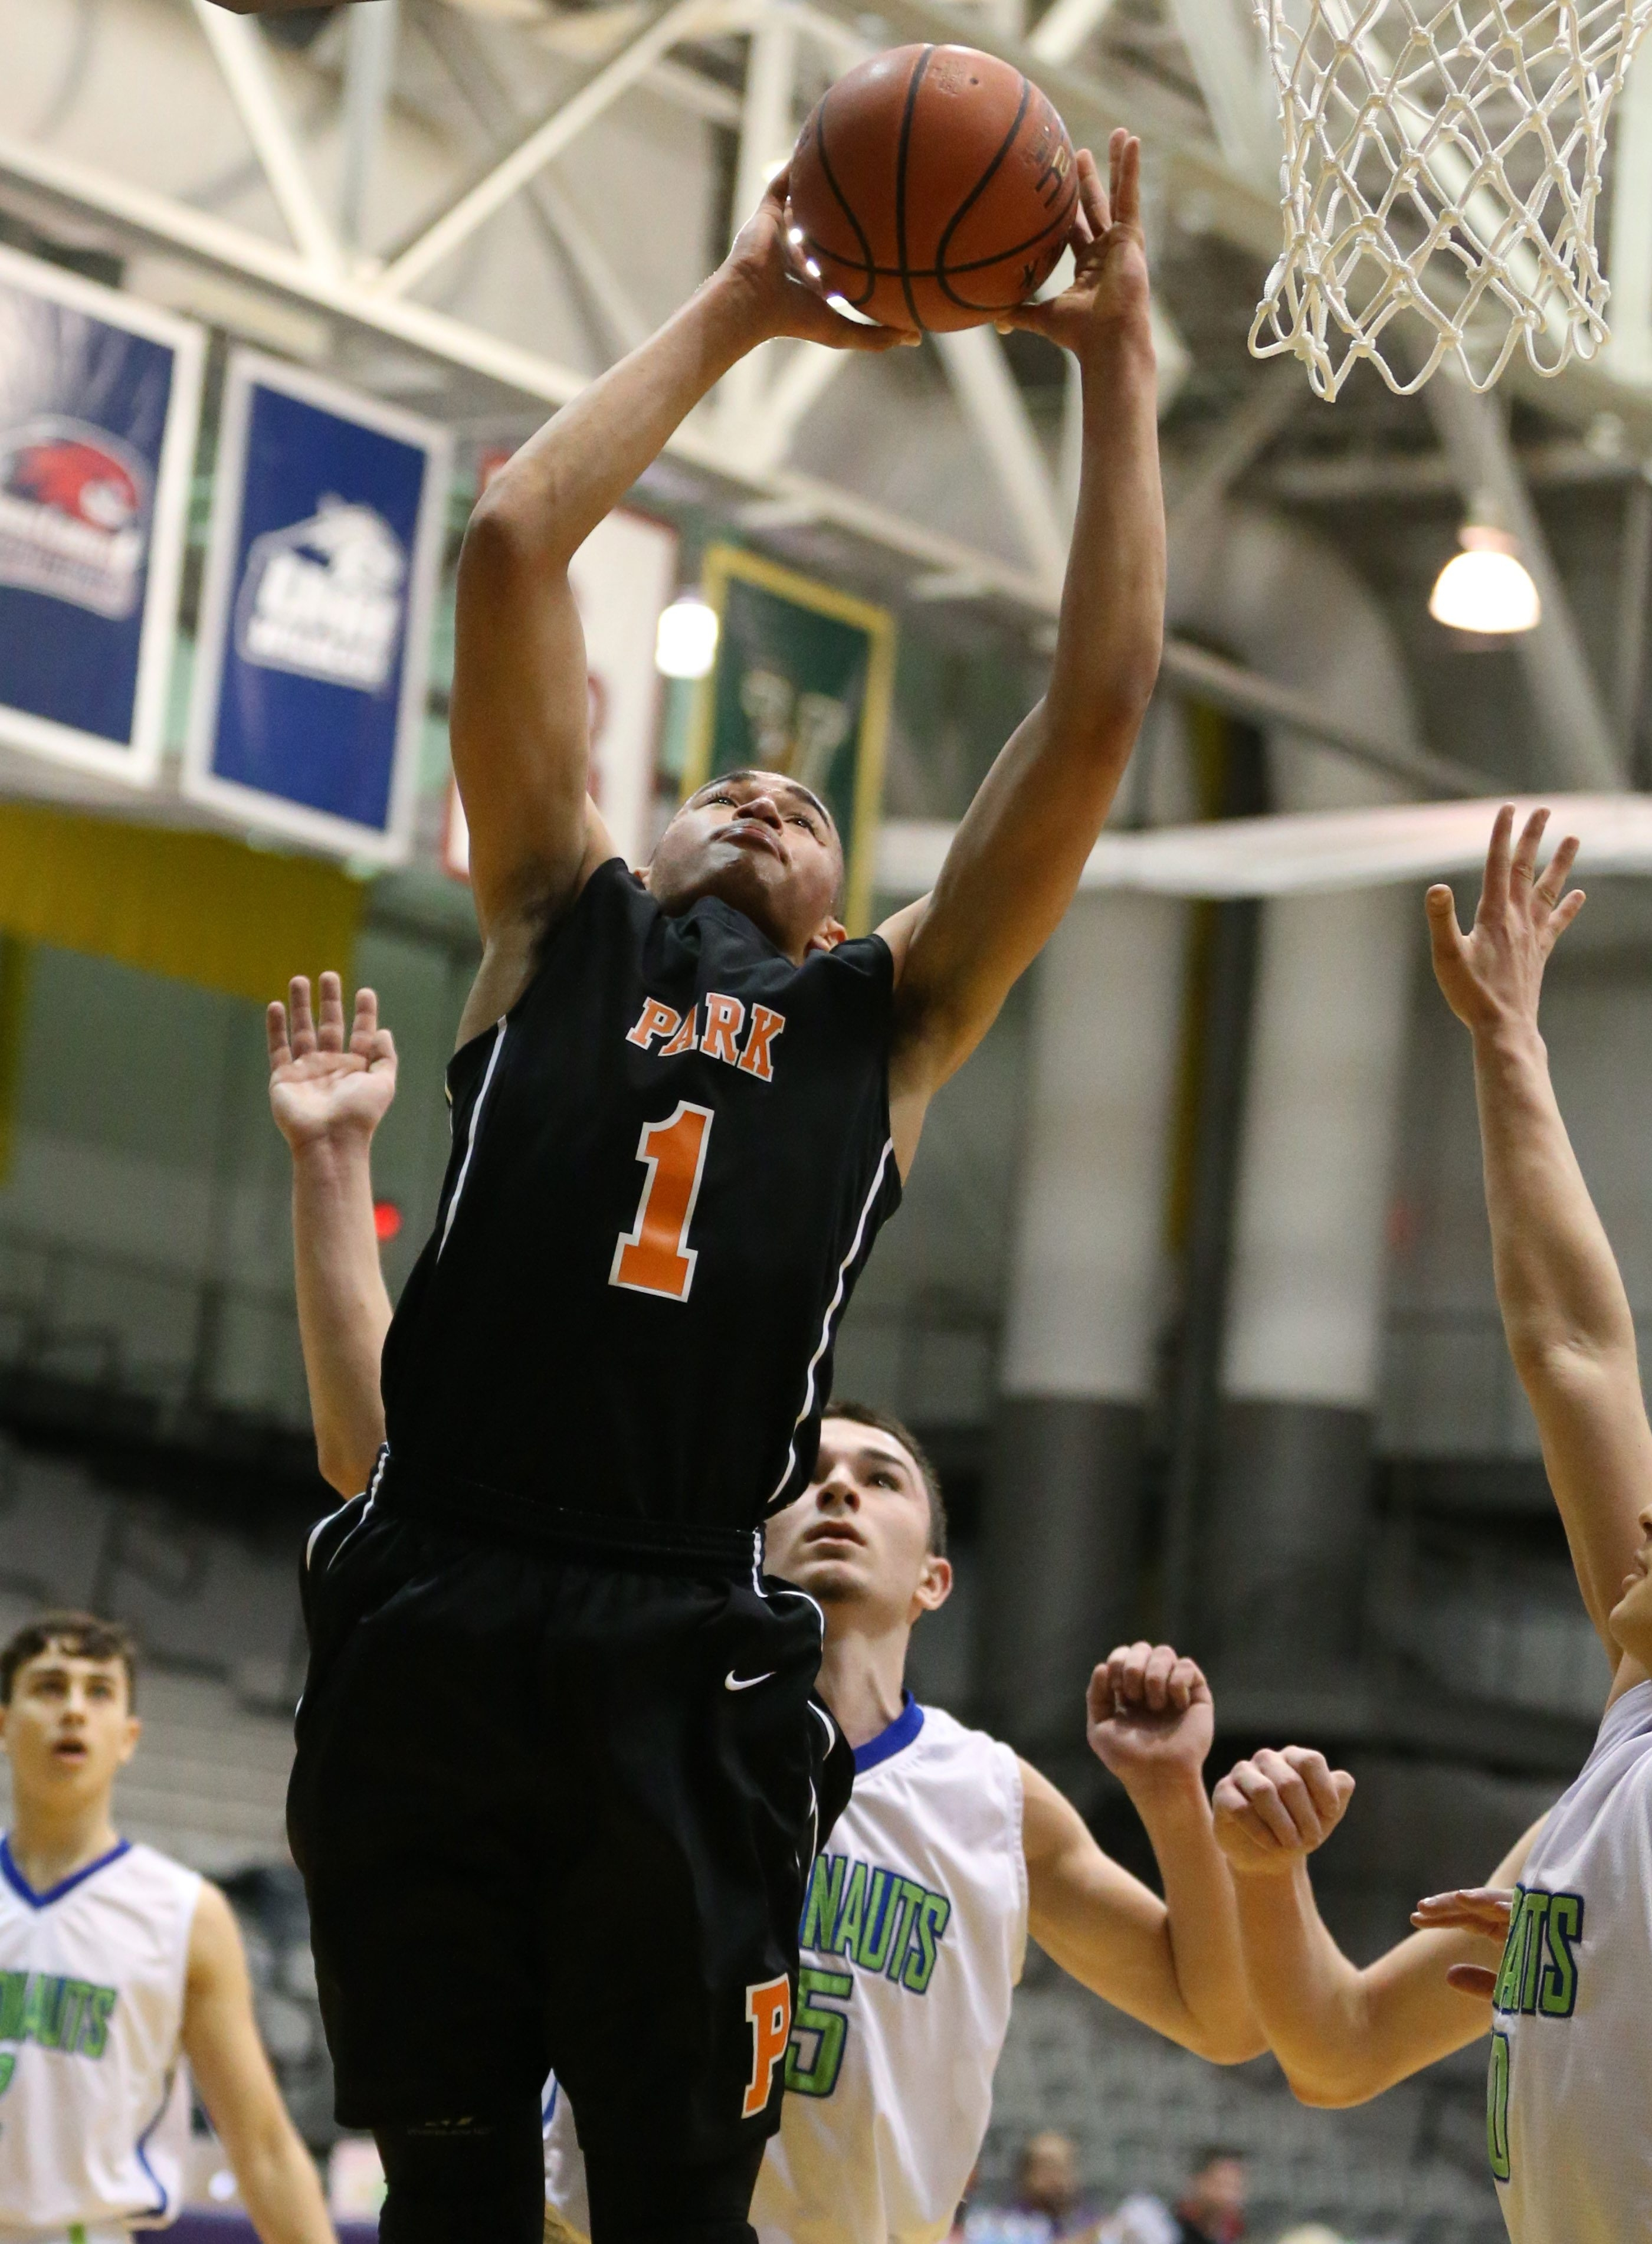 Park School senior Randy Golda goes up strong to score two points over Maspeth's Paolo Tamer in the first quarter. Park won the Federation Class B championship with a 70-51 victory.